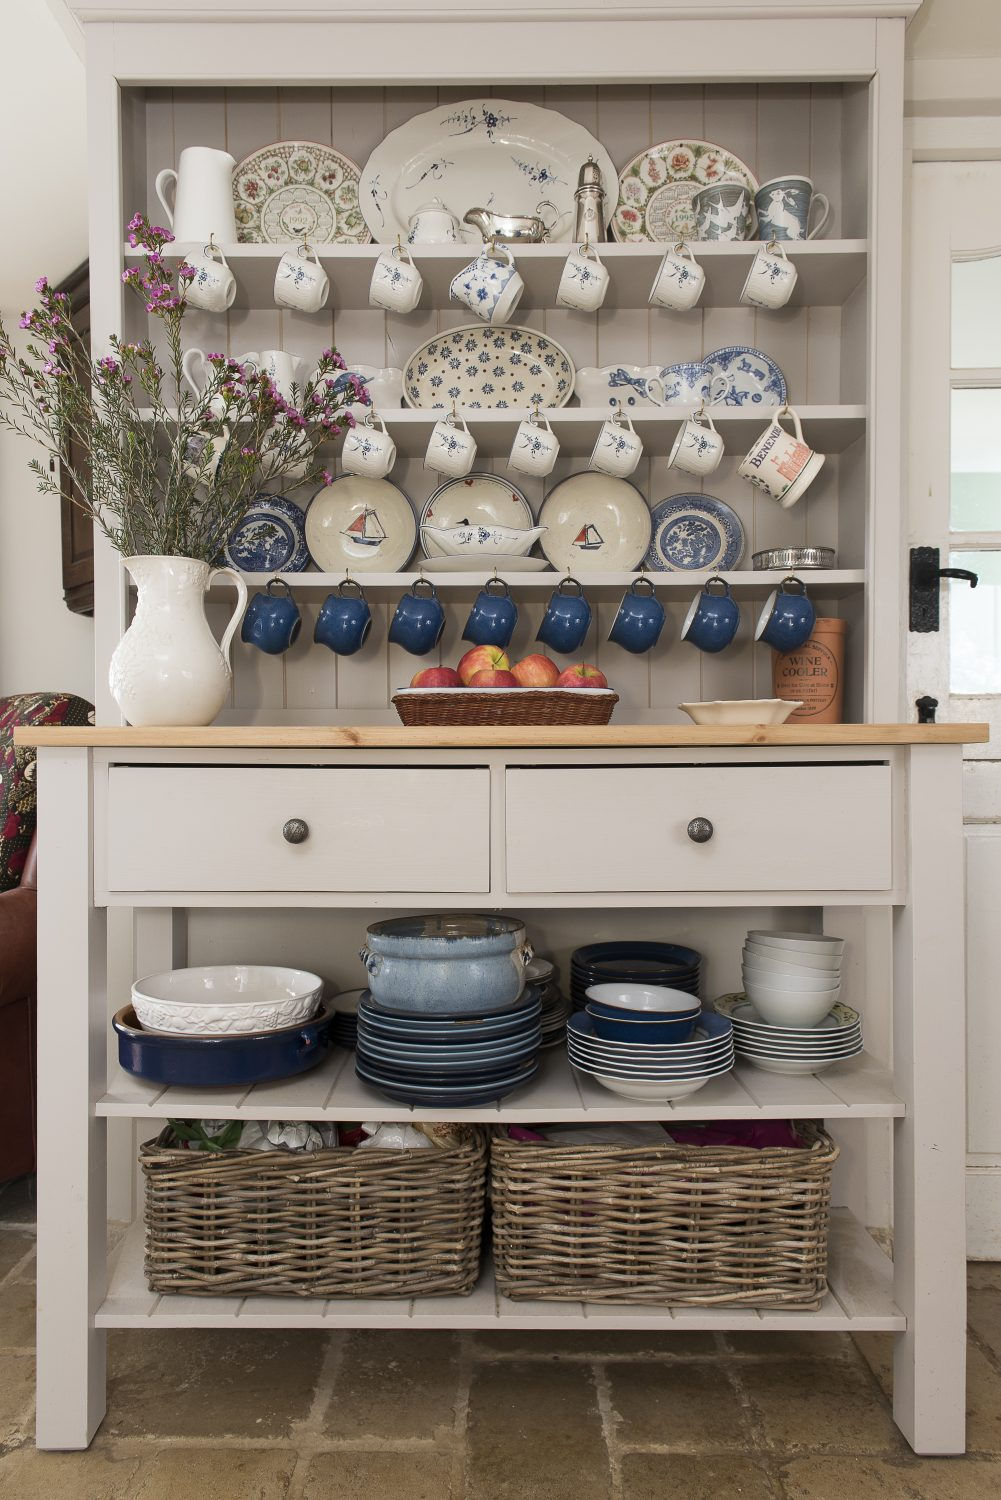 Ally had the dresser made to replace the dark wood dresser she moved to the sitting room and to reflect the kitchen's contemporary country style. Baskets and apple crates are her favourite tools for keeping clutter organised